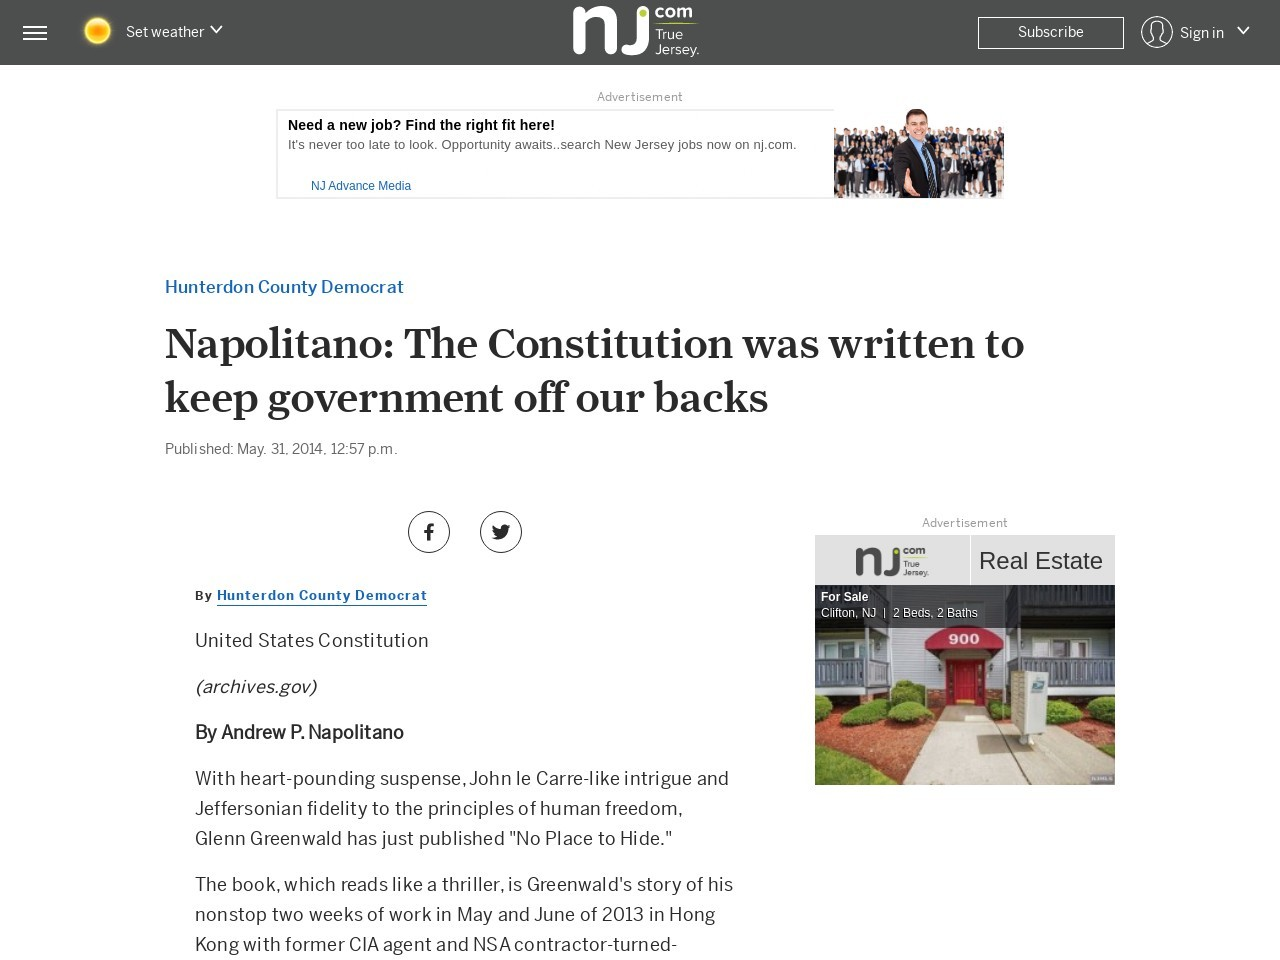 Napolitano: The Constitution was written to keep government off our backs